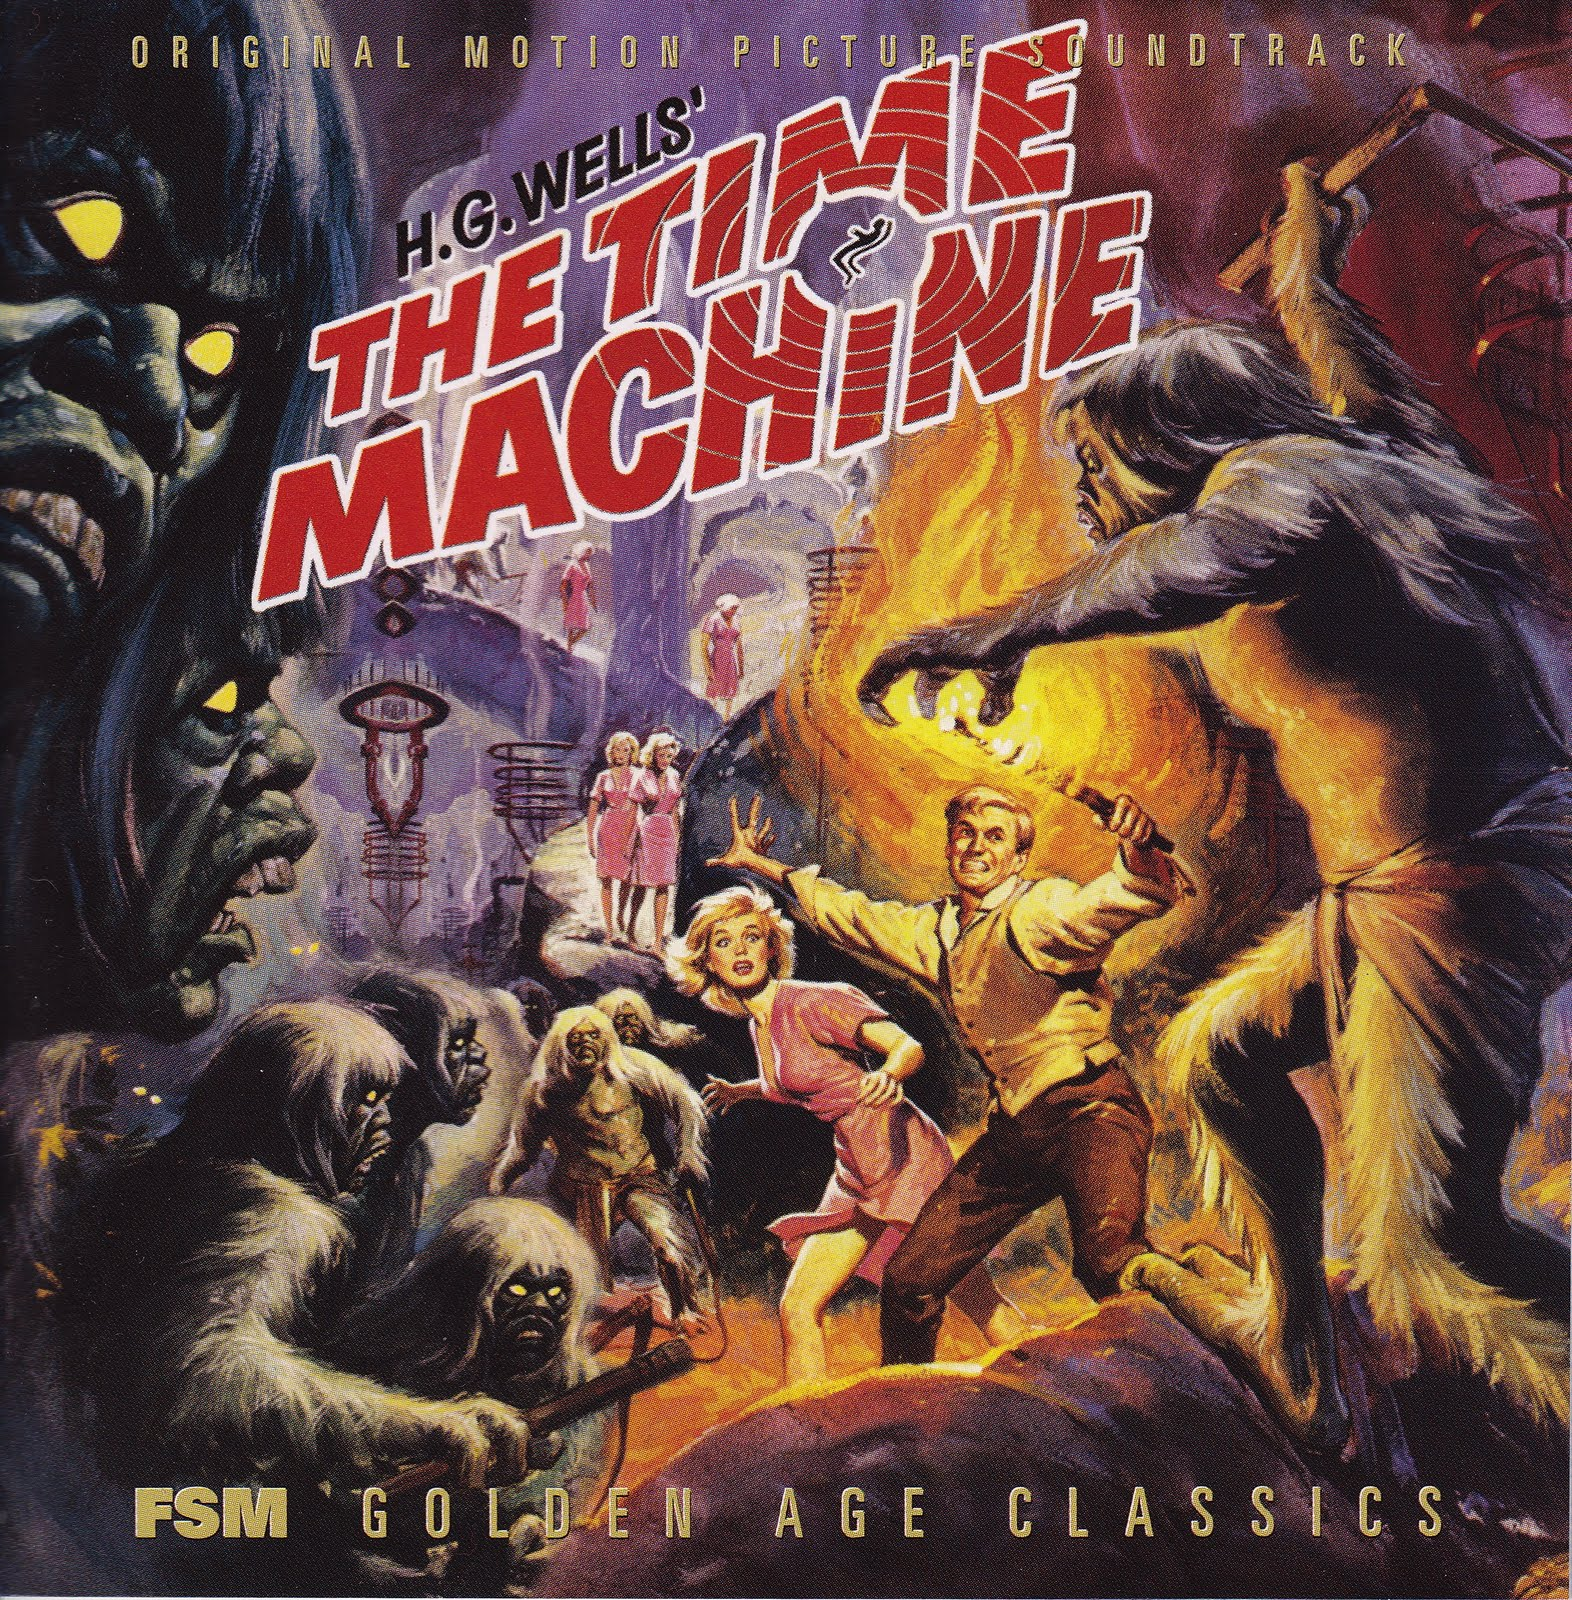 the machine by